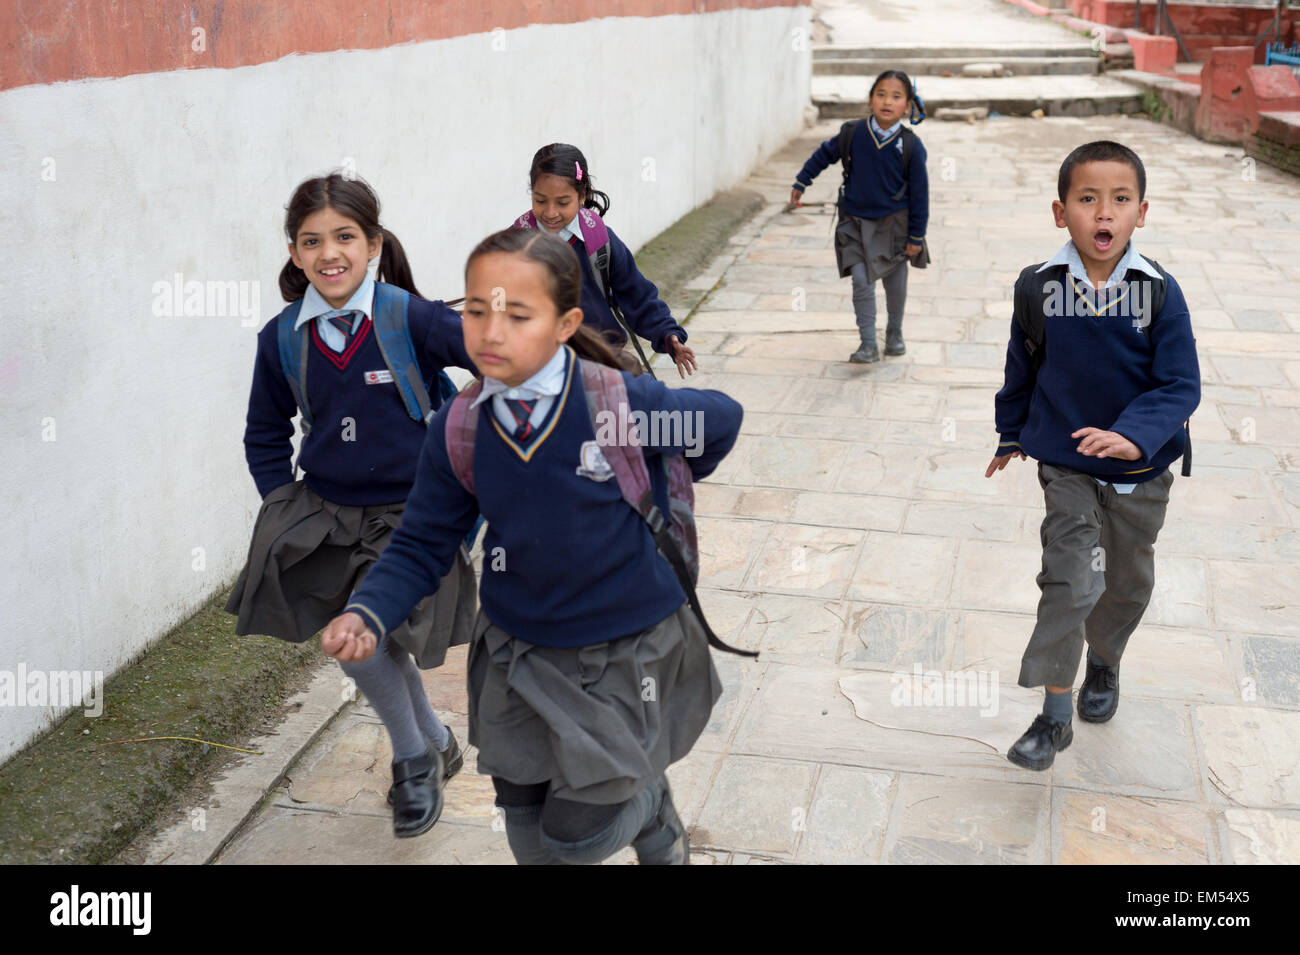 A group of children running back home after school - Stock Image